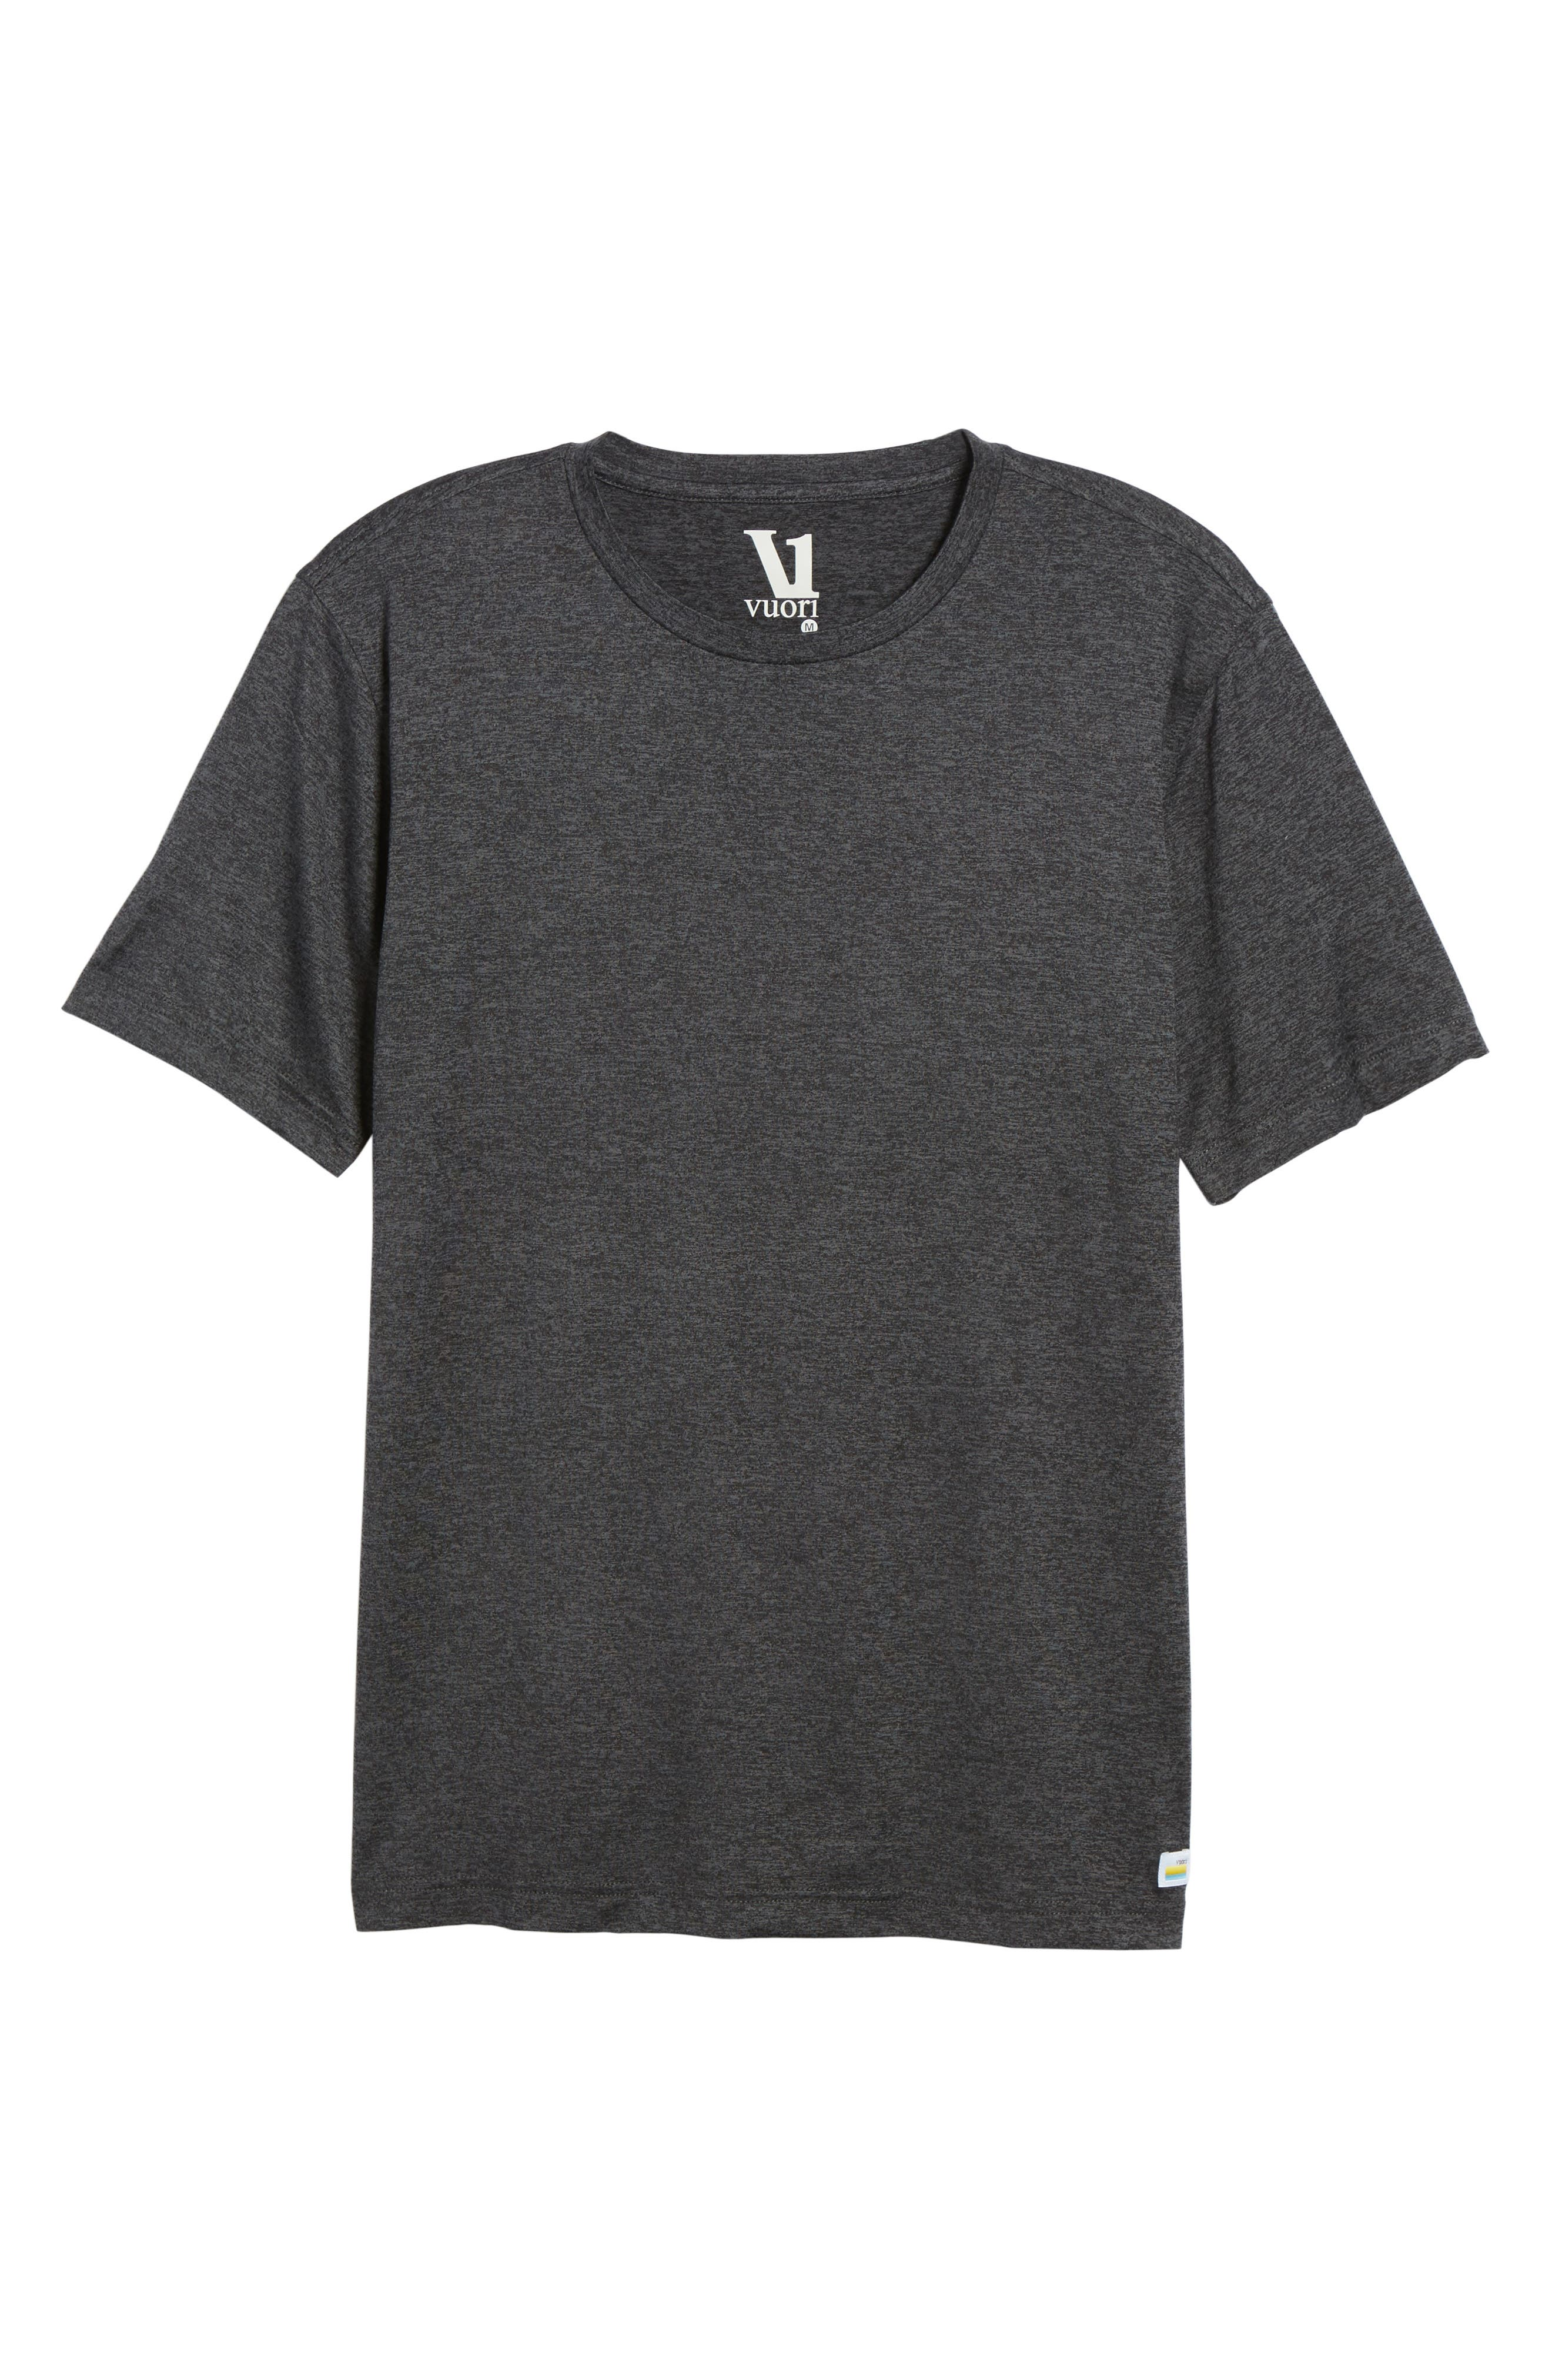 Strato Slim Fit Crewneck T-Shirt,                             Alternate thumbnail 6, color,                             HEATHER CHARCOAL